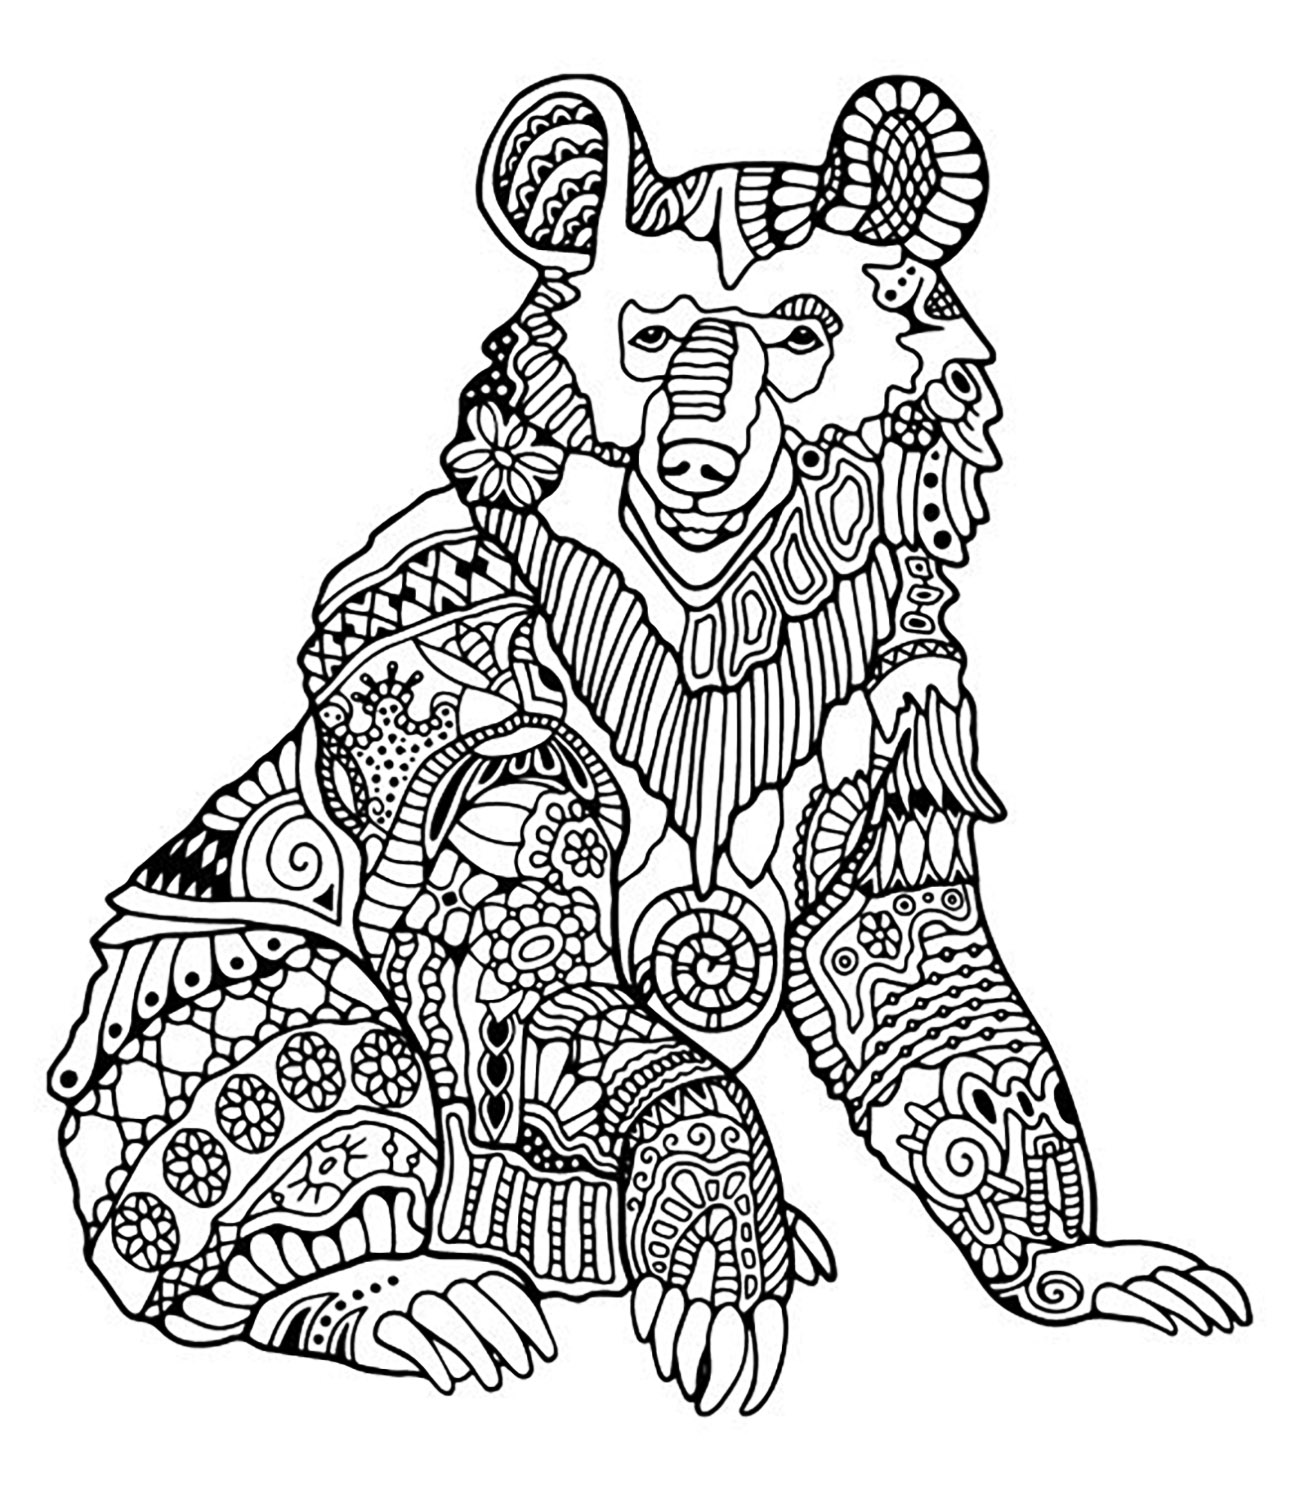 coloring pages of bears to print coloring pages bear free printable coloring pages and bears of to coloring print pages